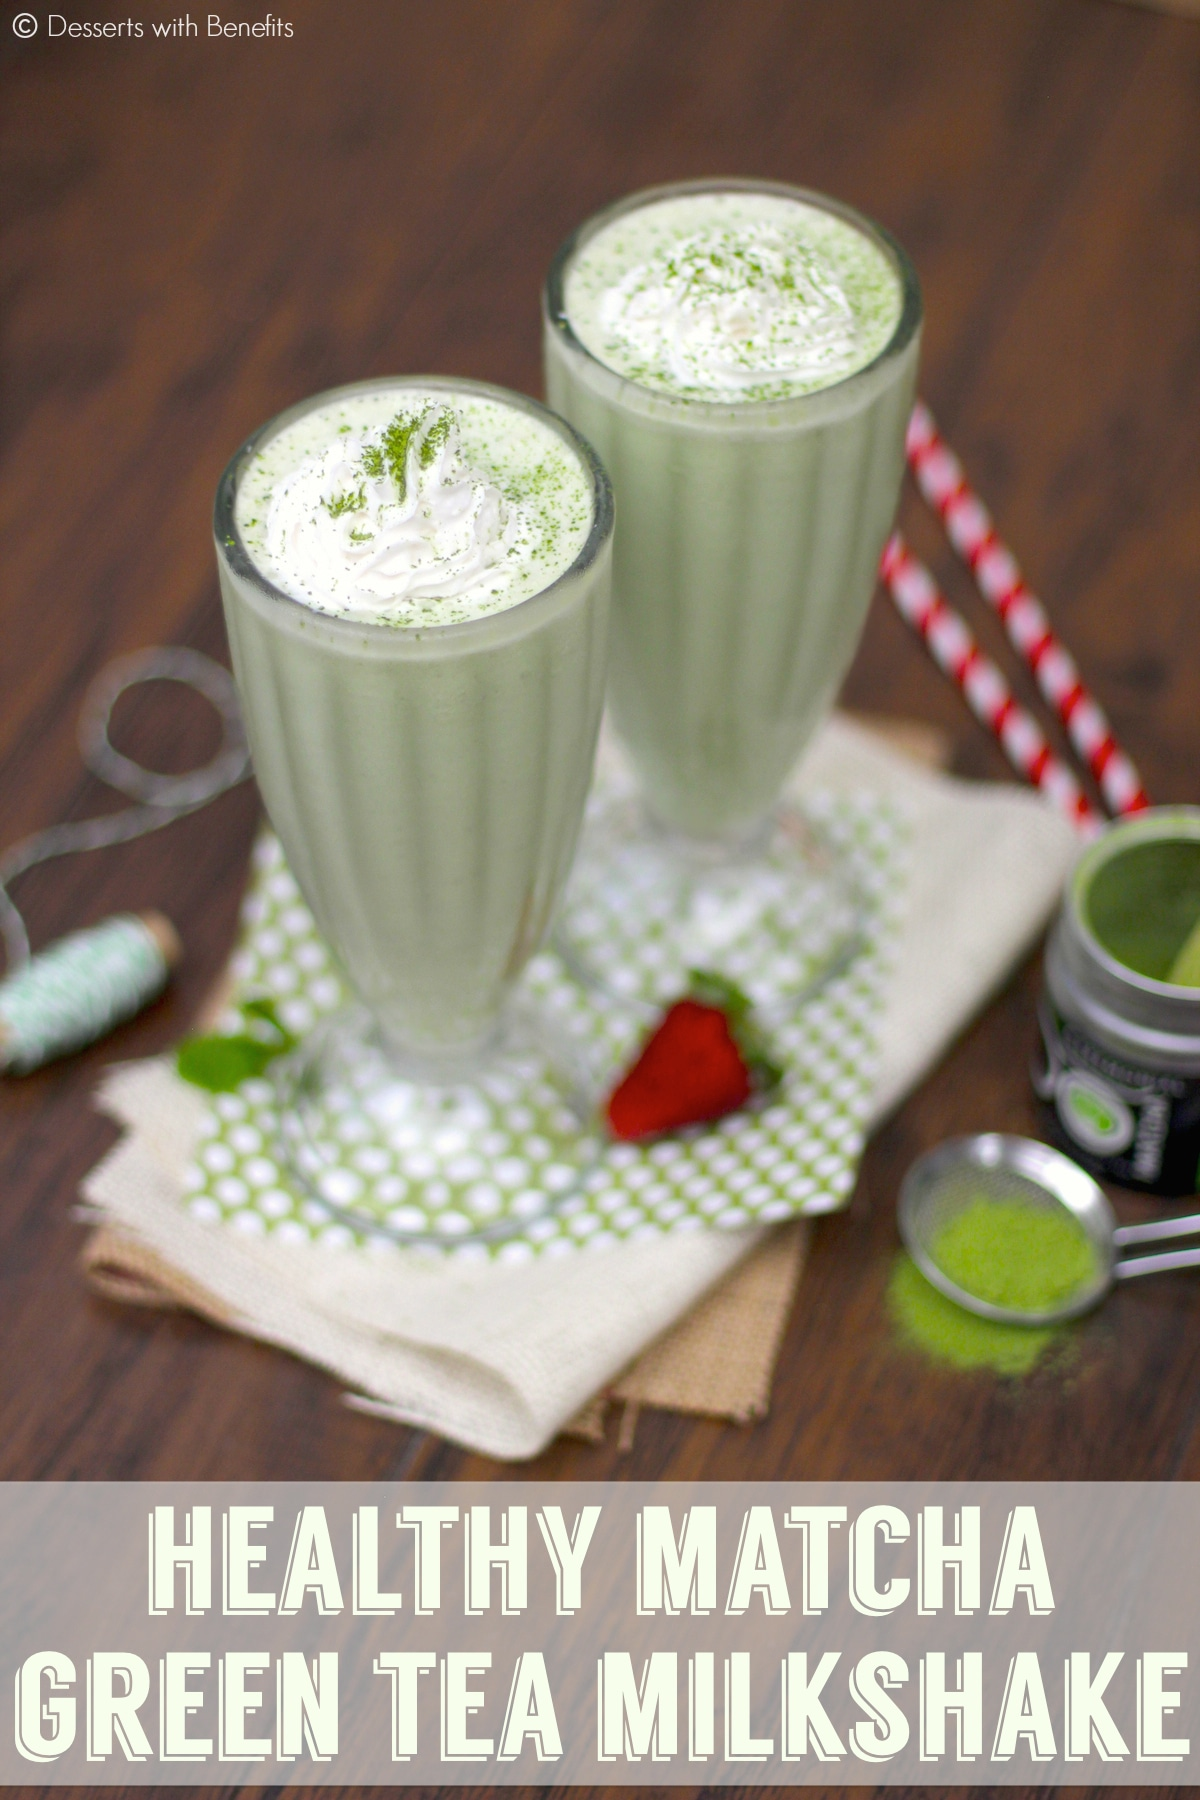 This Healthy Matcha Green Tea Milkshake is creamy, sweet, and sophisticated. You'd never know it's naturally green, low fat, low carb, and high protein too!